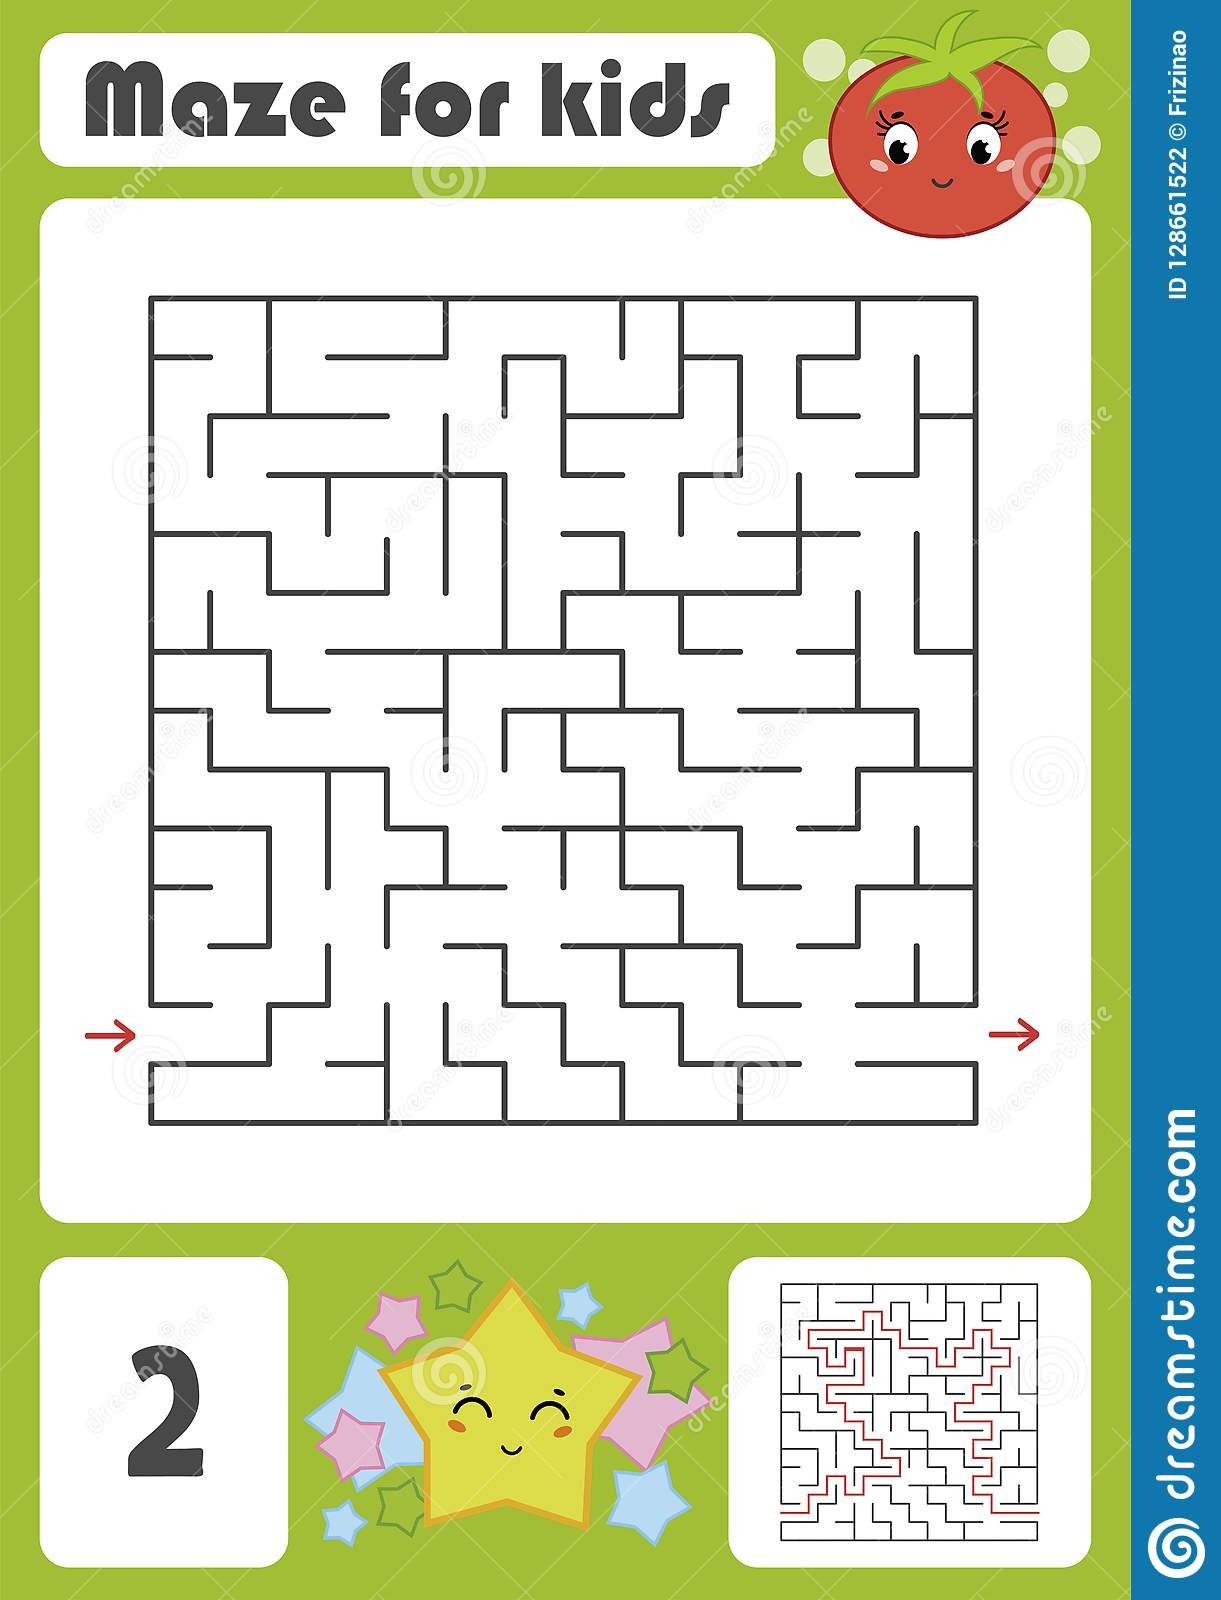 A Square Labyrinth With A Cartoon Character. Pretty Tomato à Labyrinthe A Imprimer